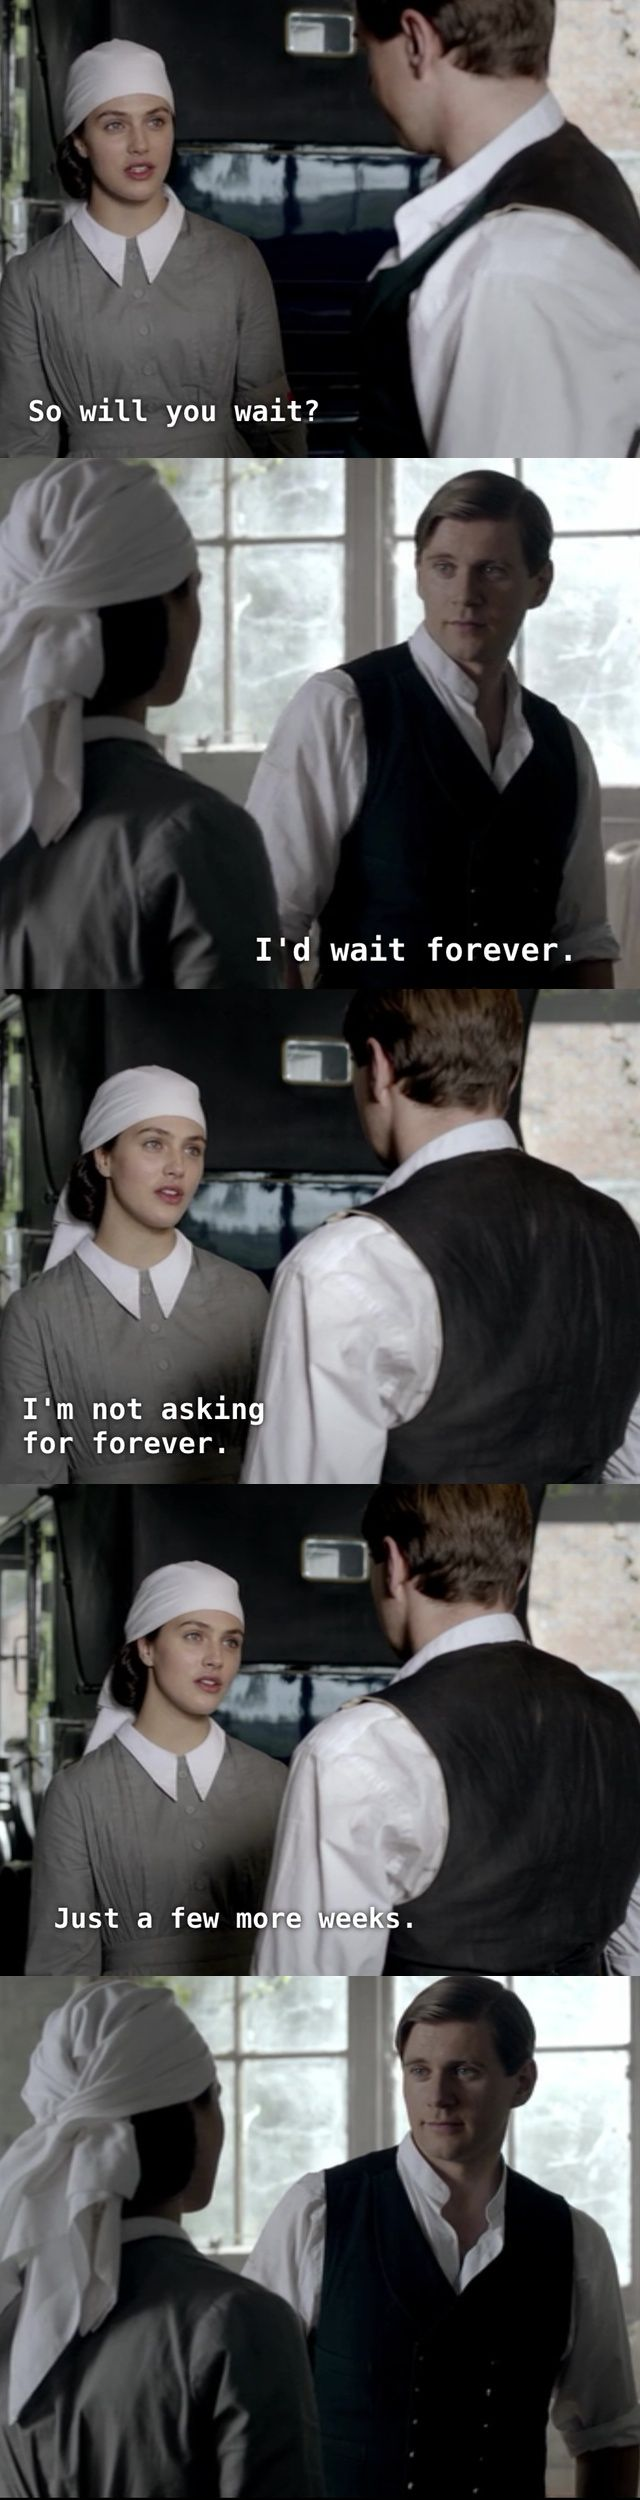 Sybil and Branson - Downton Abbey quote. I thought I ha totally moved on past Sybil's death, but now I'm depressed and melancholy and longing for Branson again,